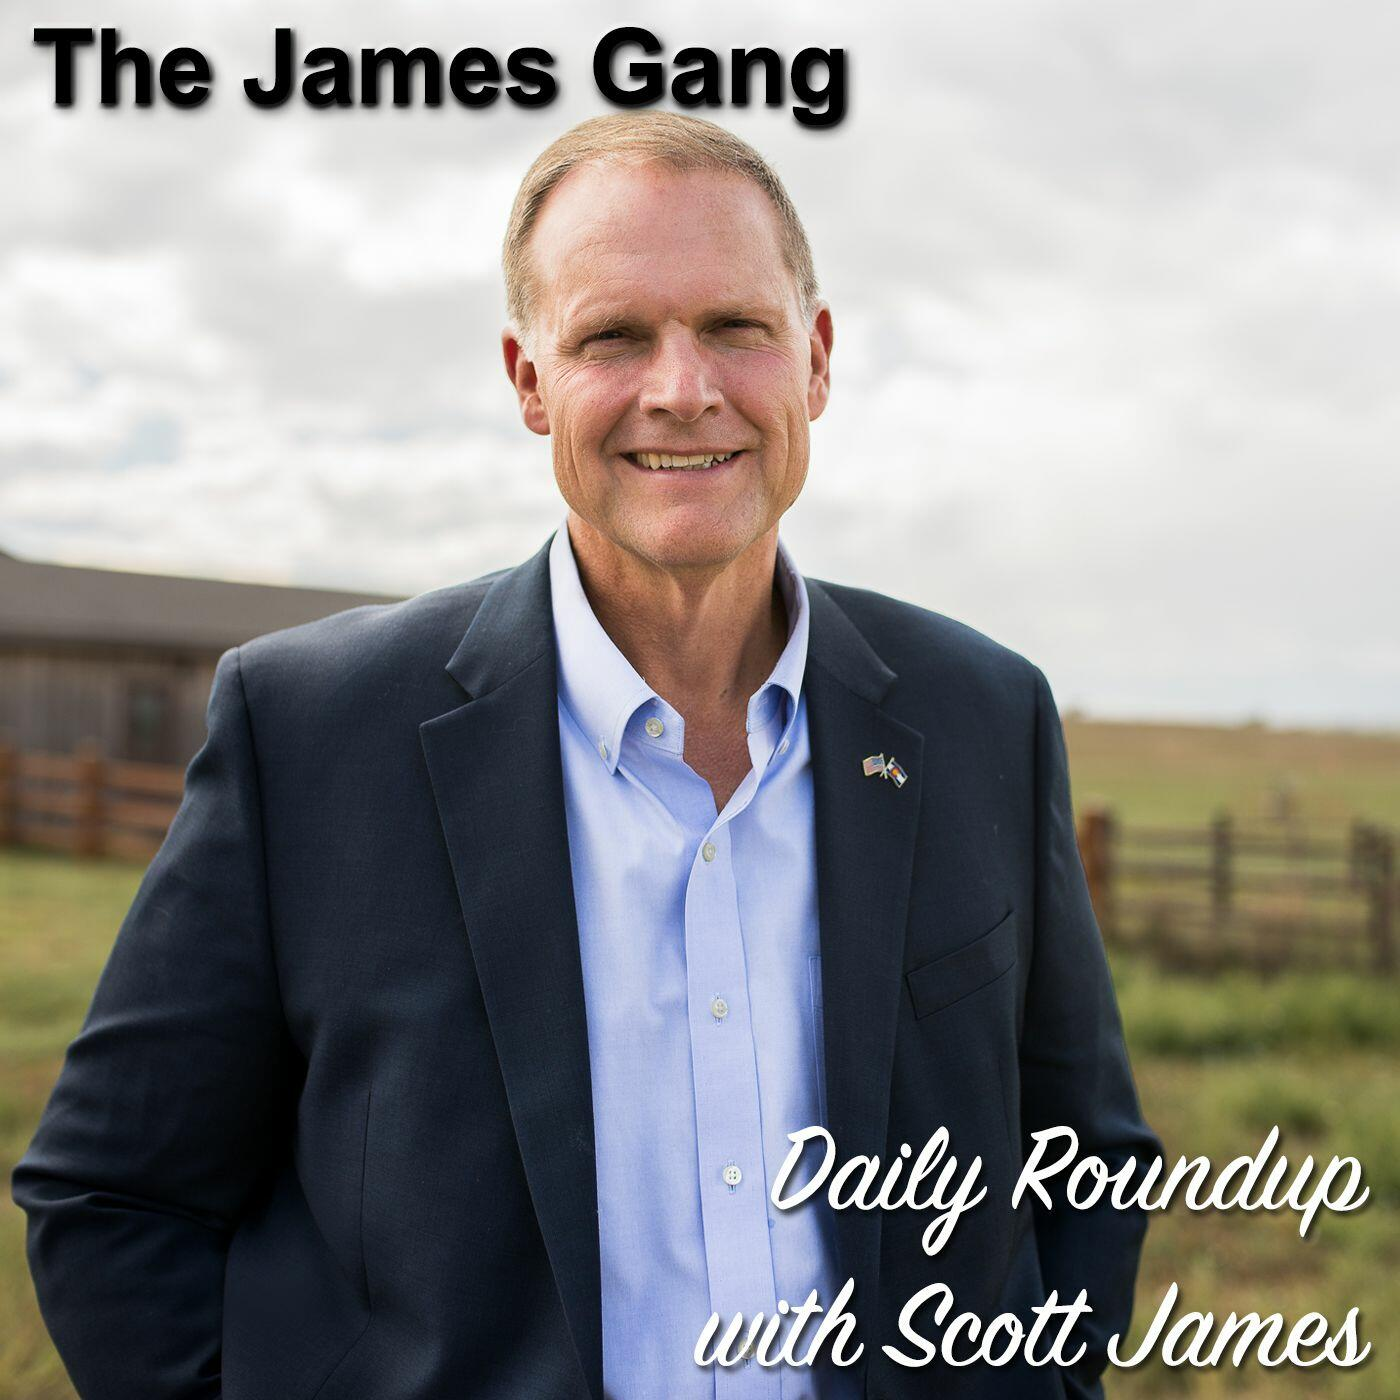 The James Gang Daily Roundup